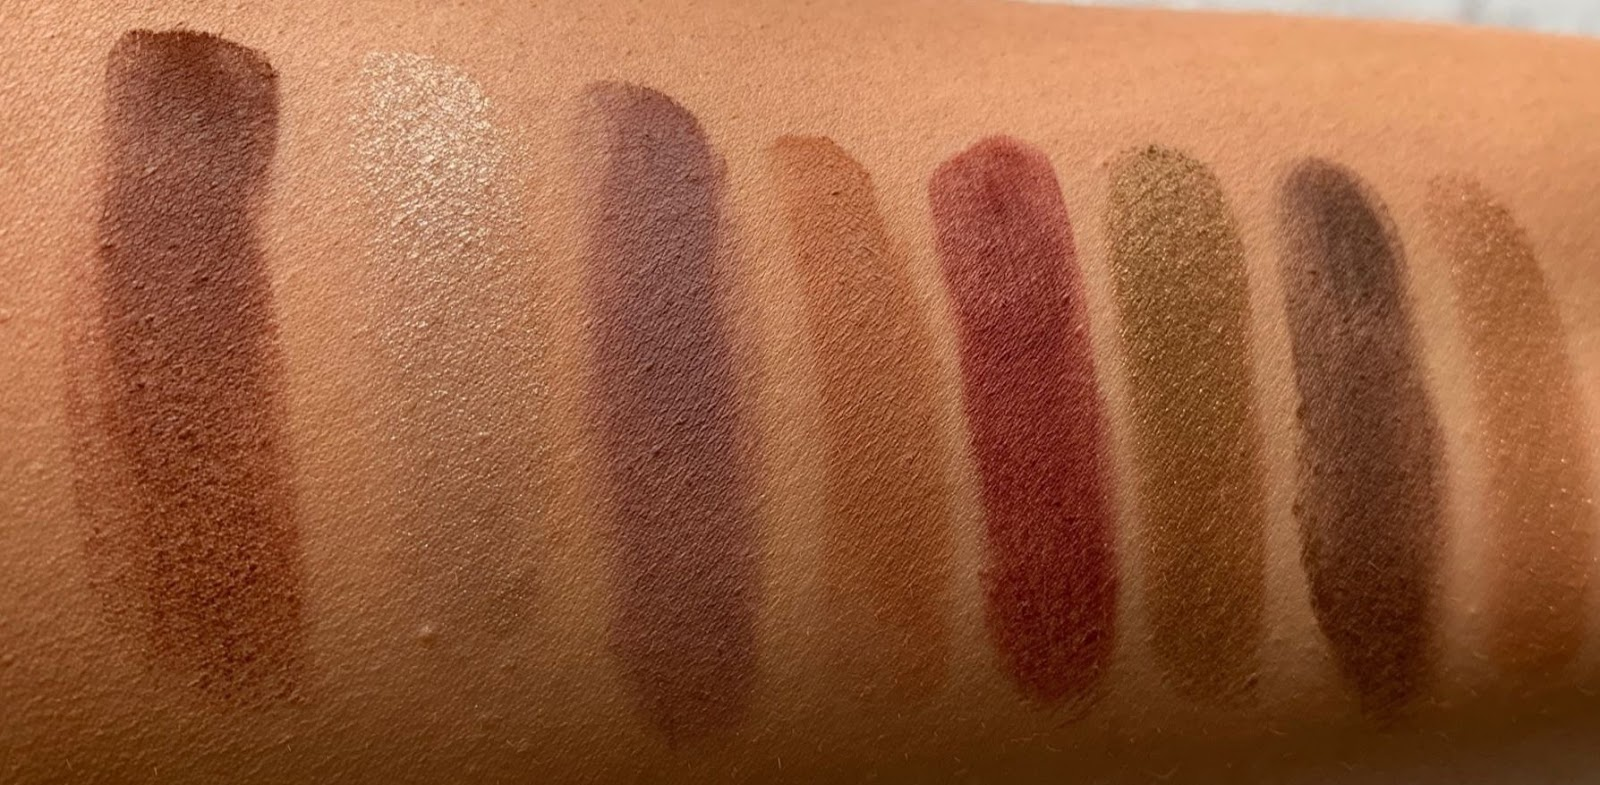 Beautonomy shadows, swatches and discount code